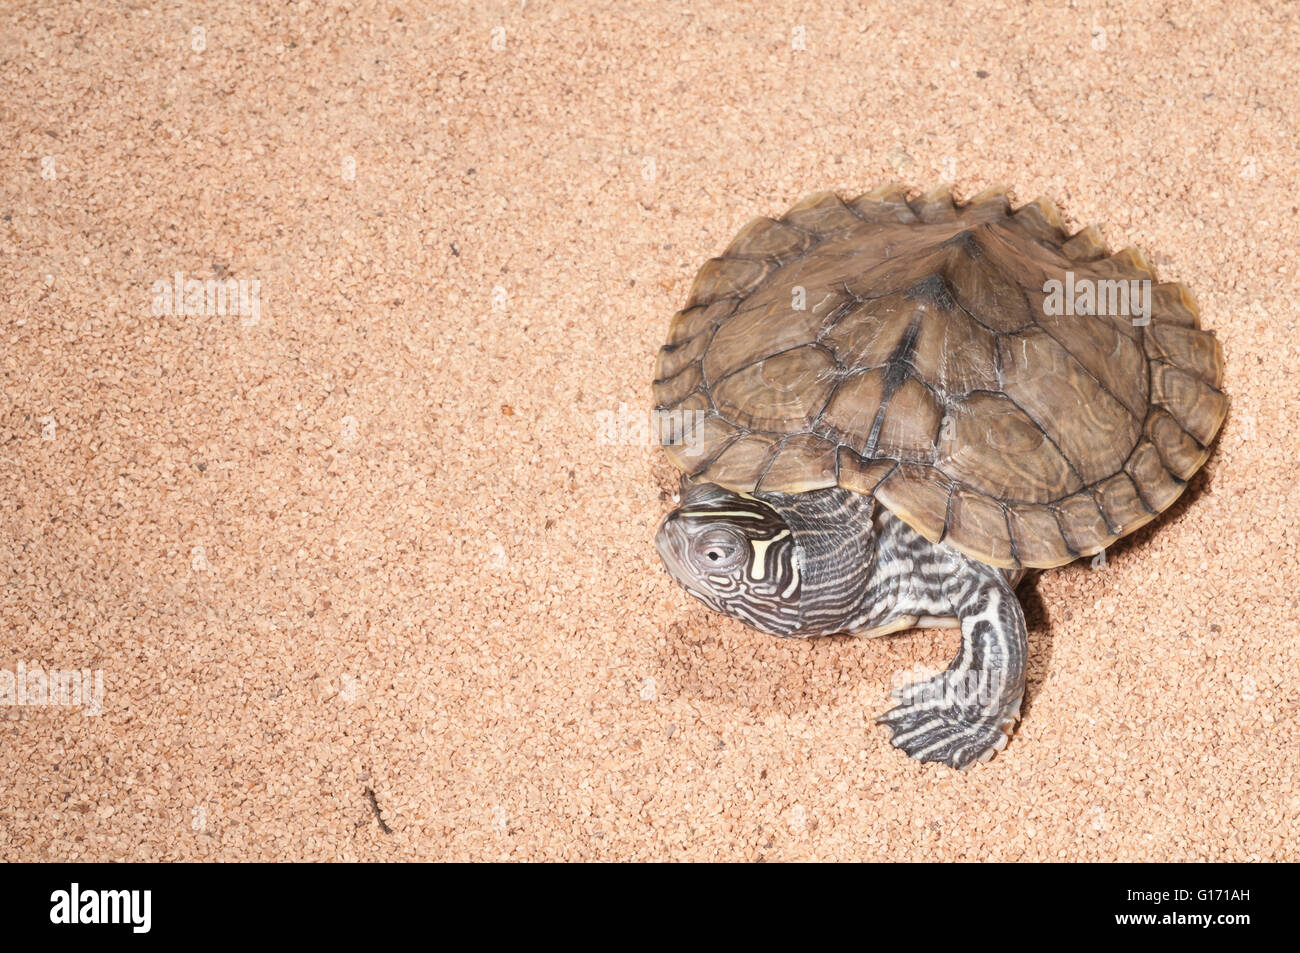 Mississippi Map Turtle Graptemys Pseudogeographica Kohni Native - Missisippi map